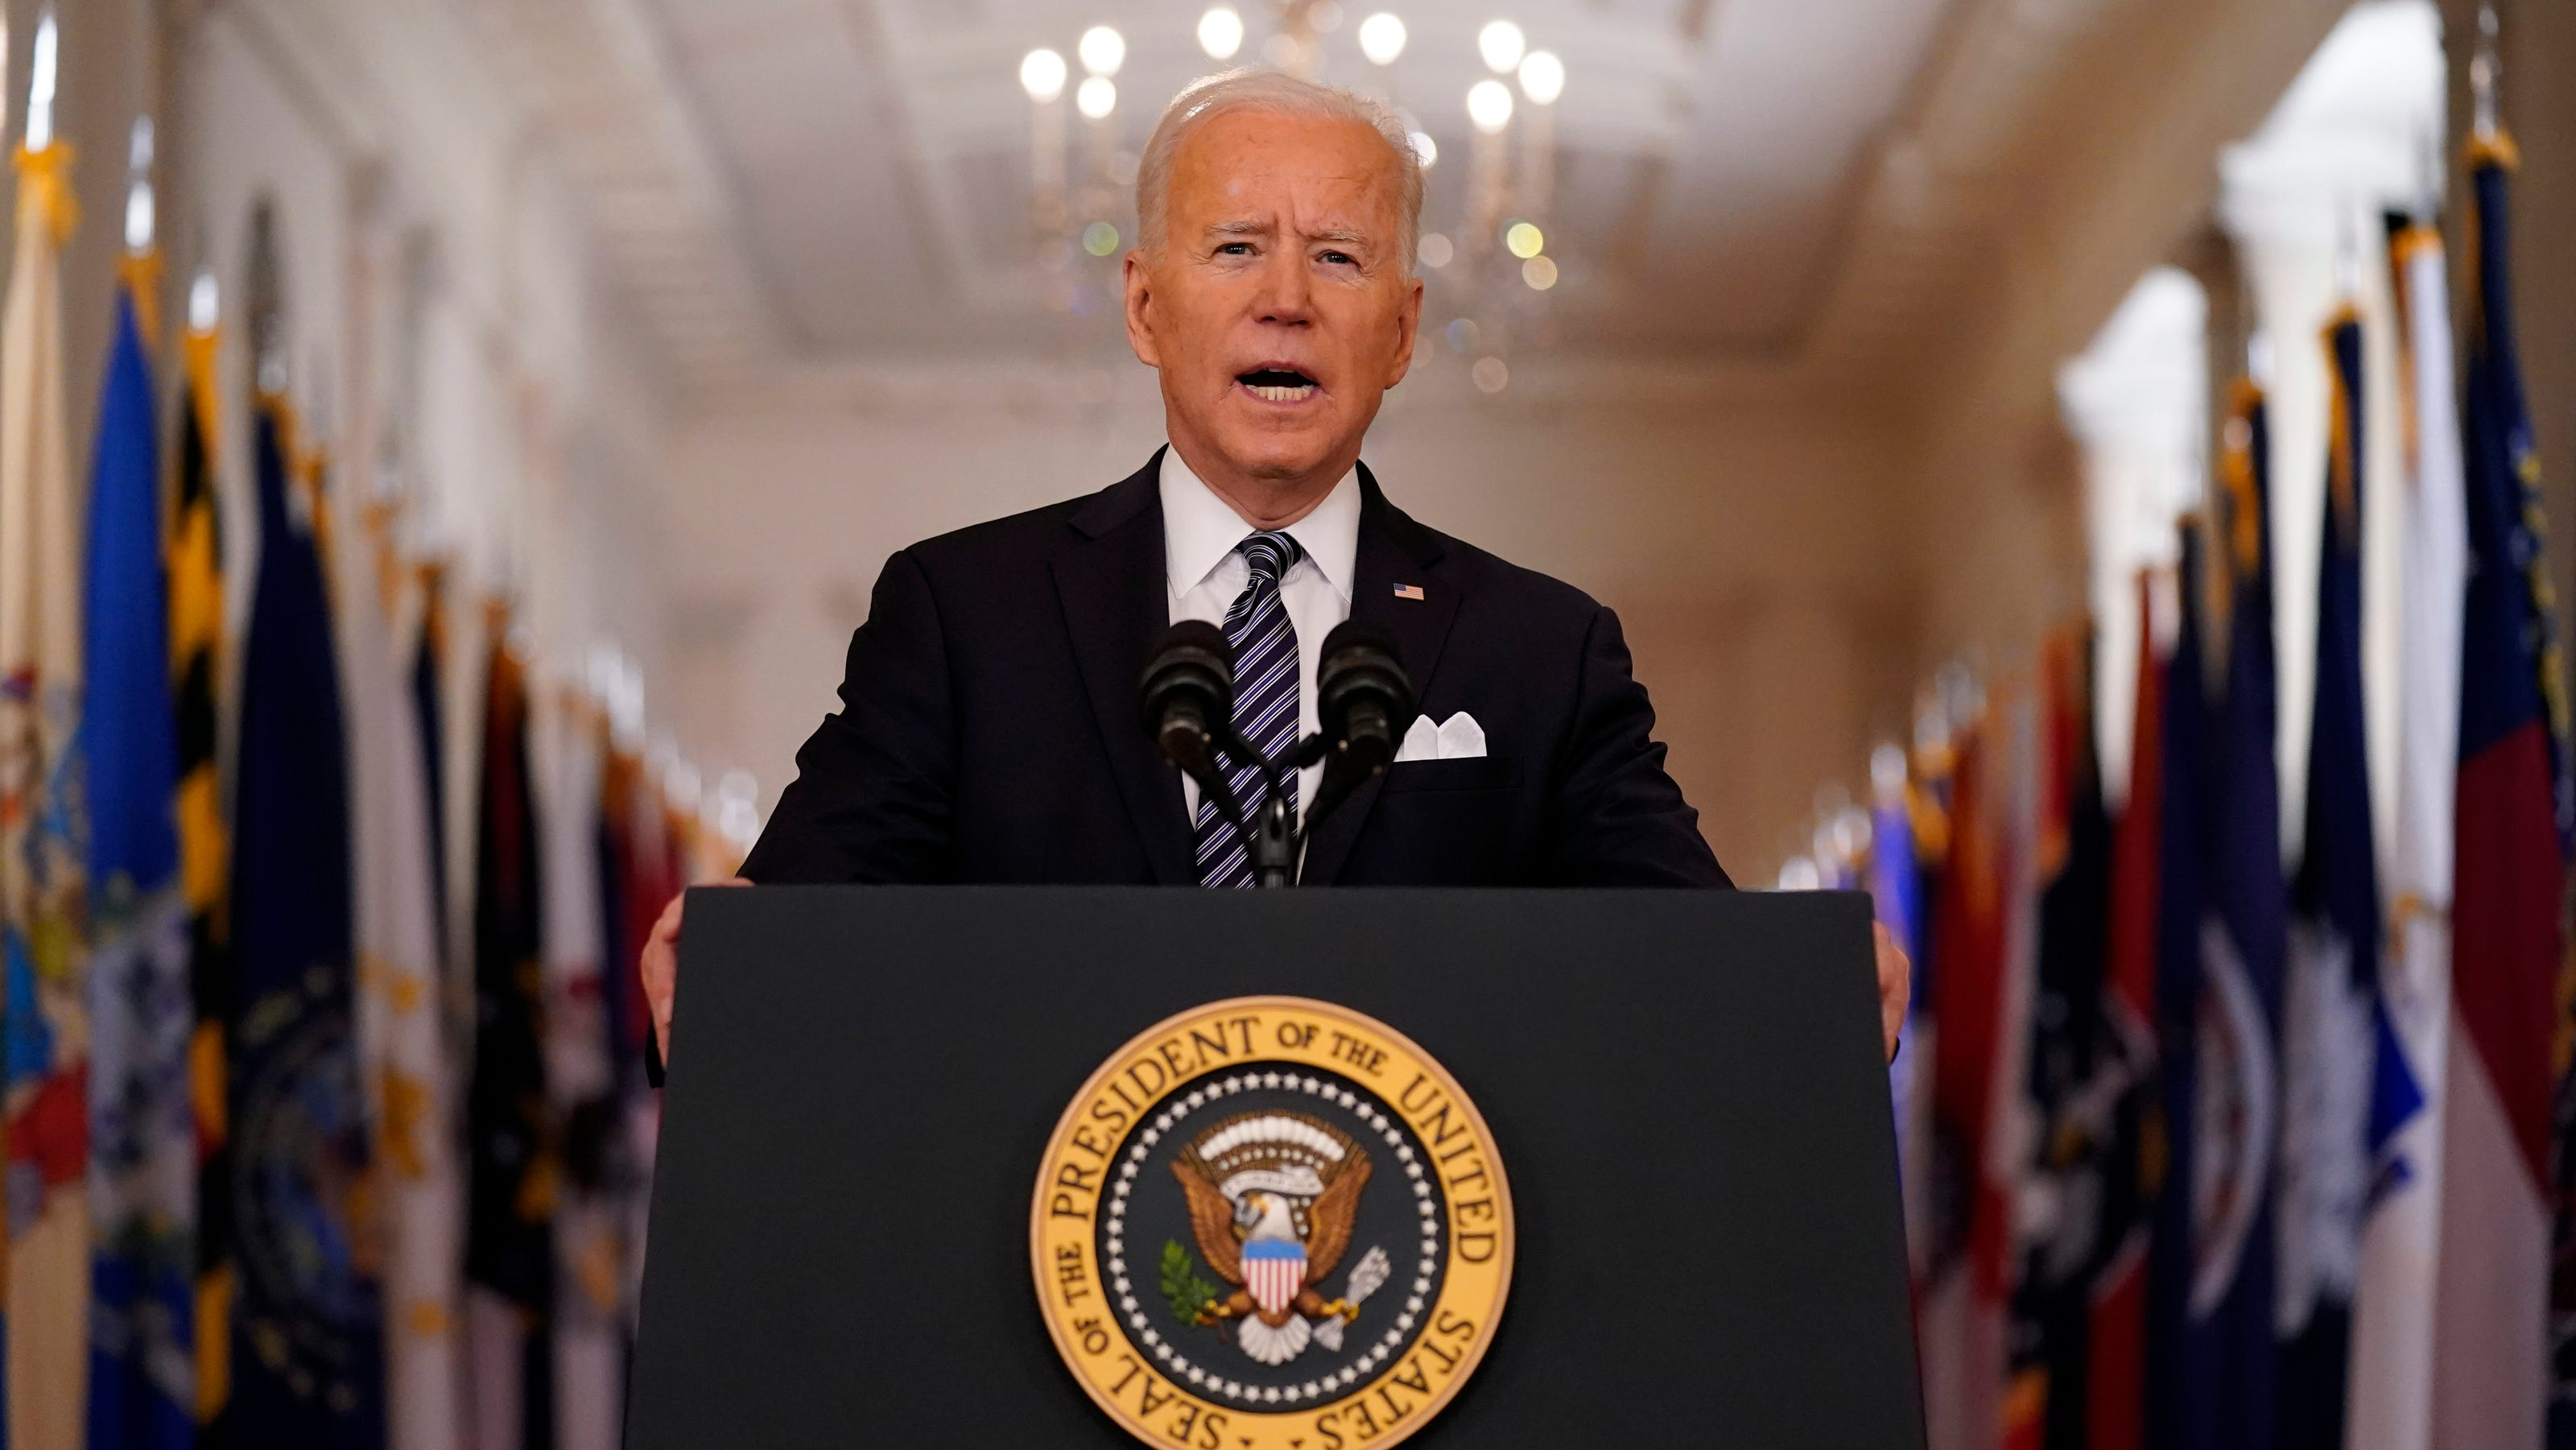 www.usatoday.com: 'It's wrong, it's un-American and it must stop': President Biden denounces attacks against Asian Americans